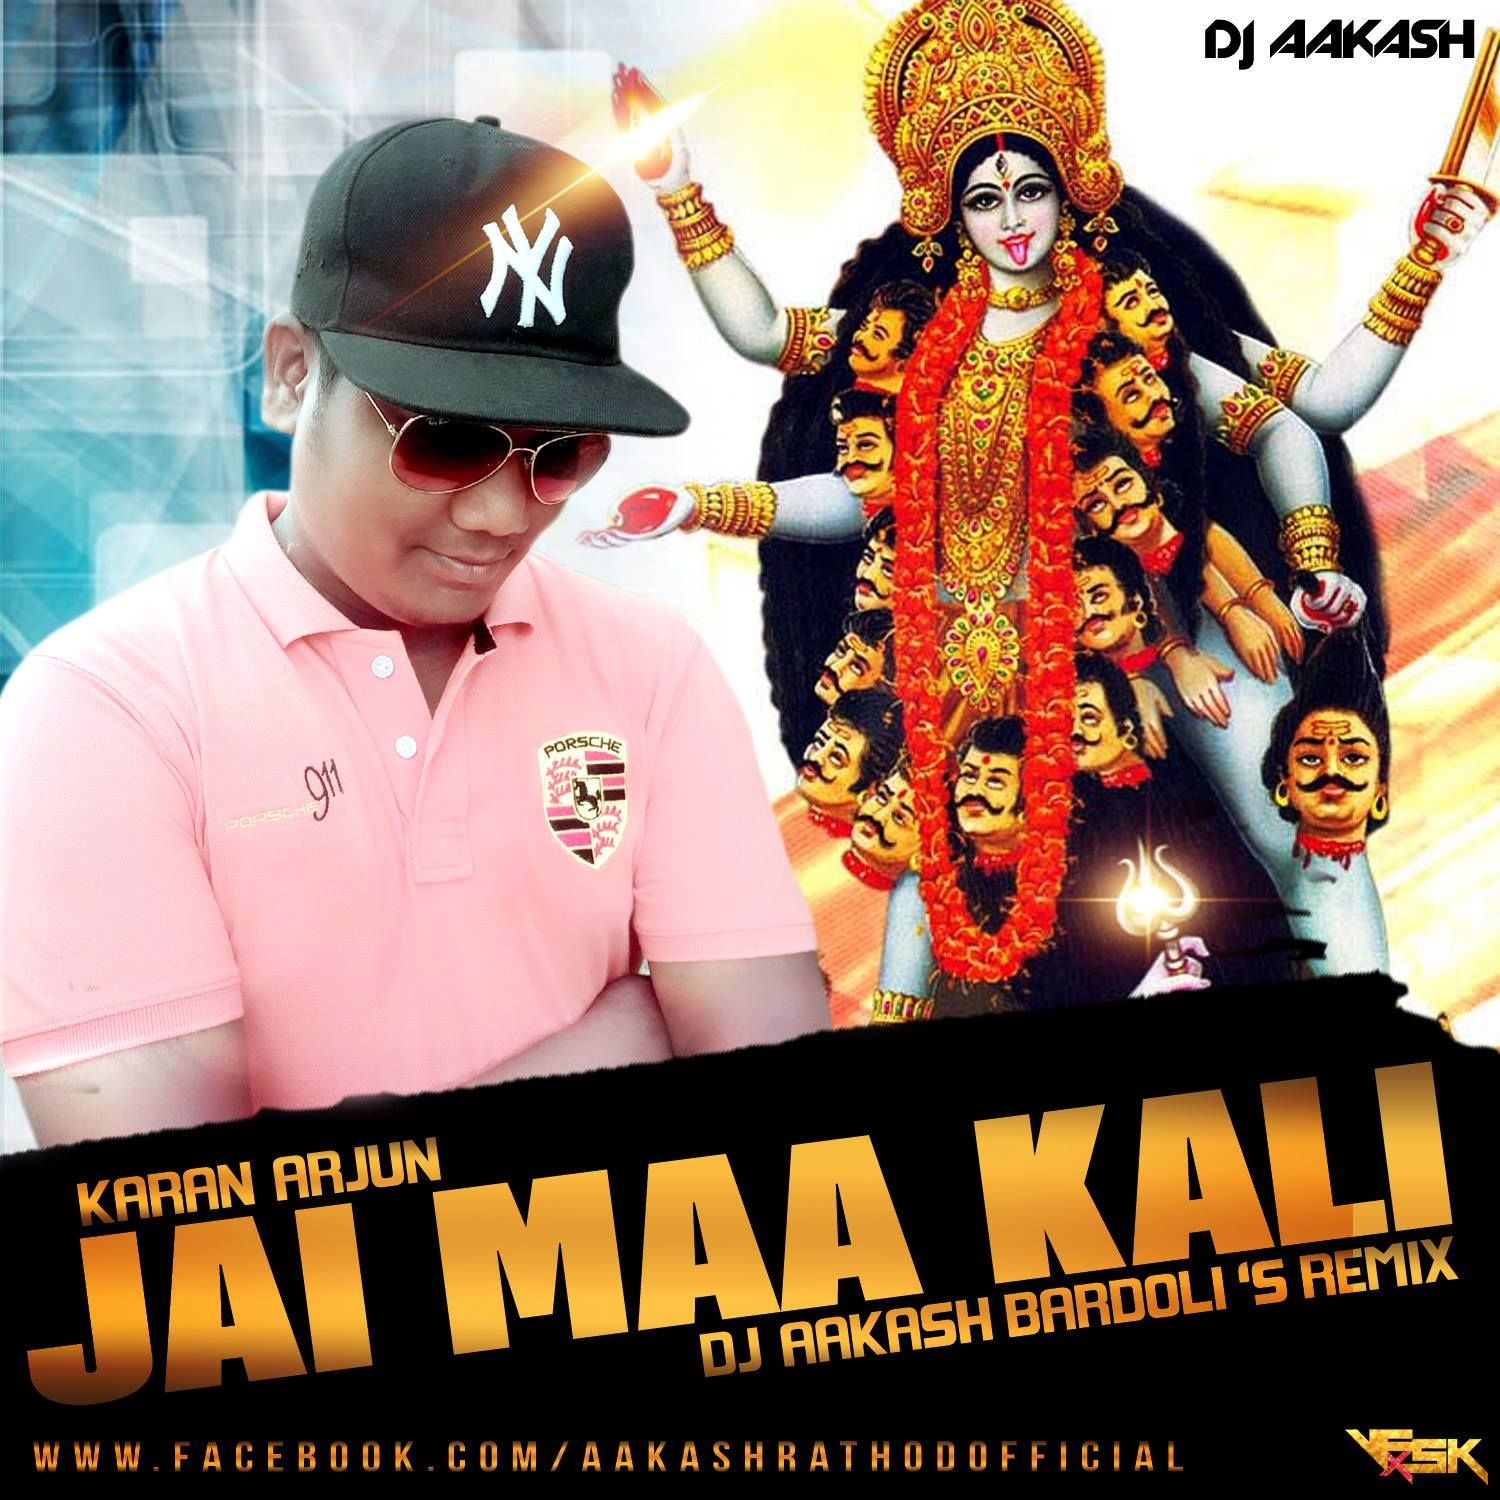 dj song download 2015 mp3